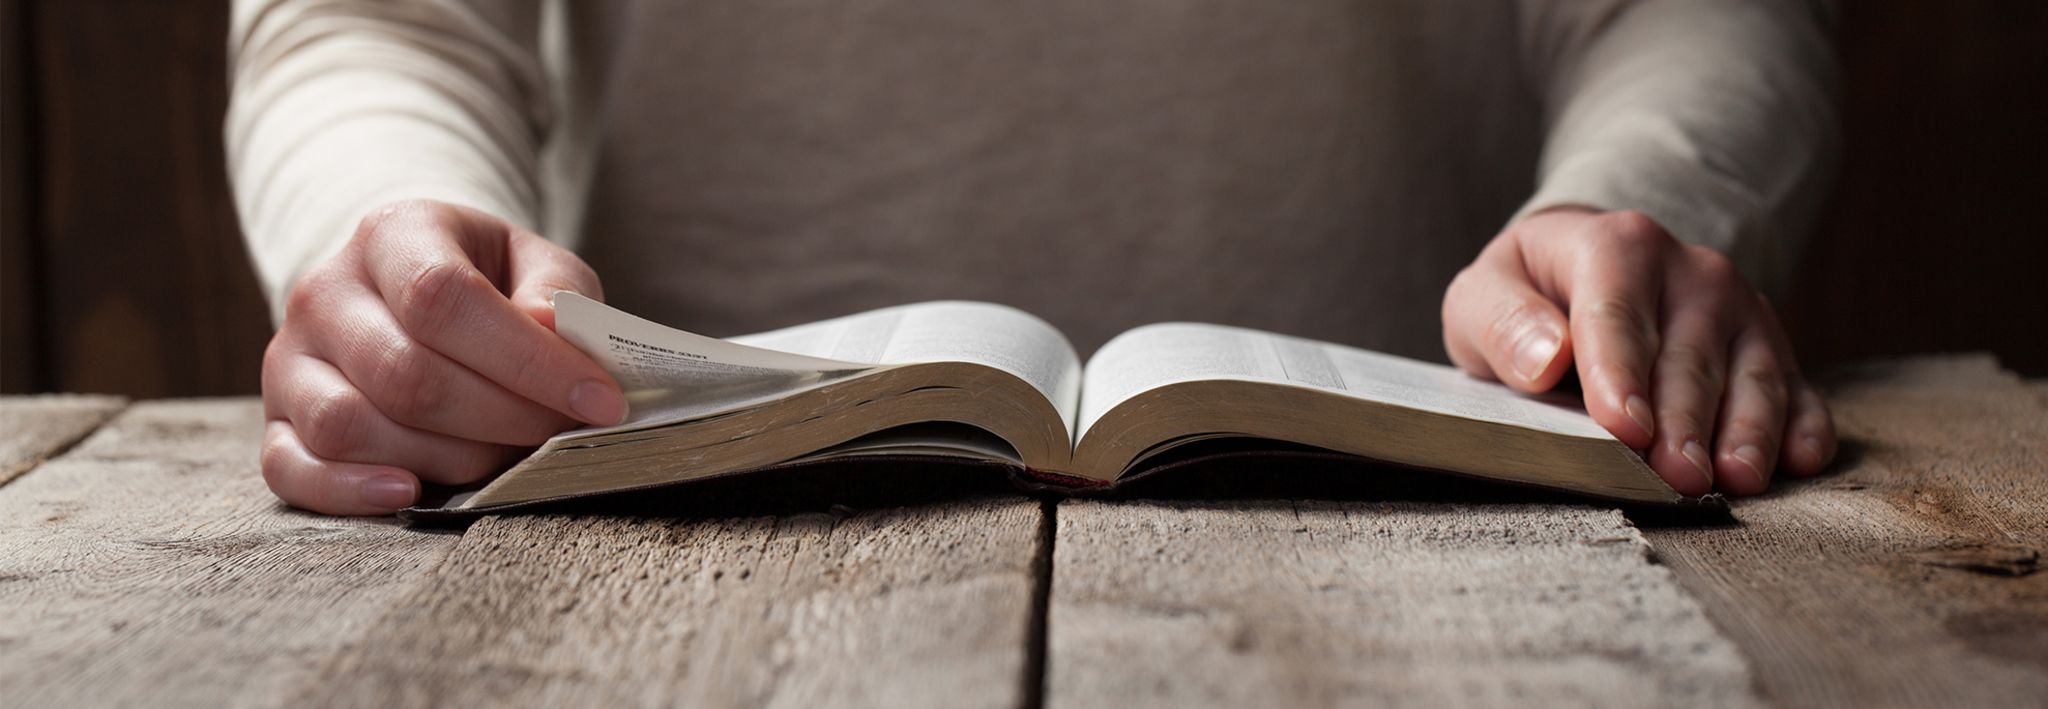 A woman has opened and is reading her Bible.